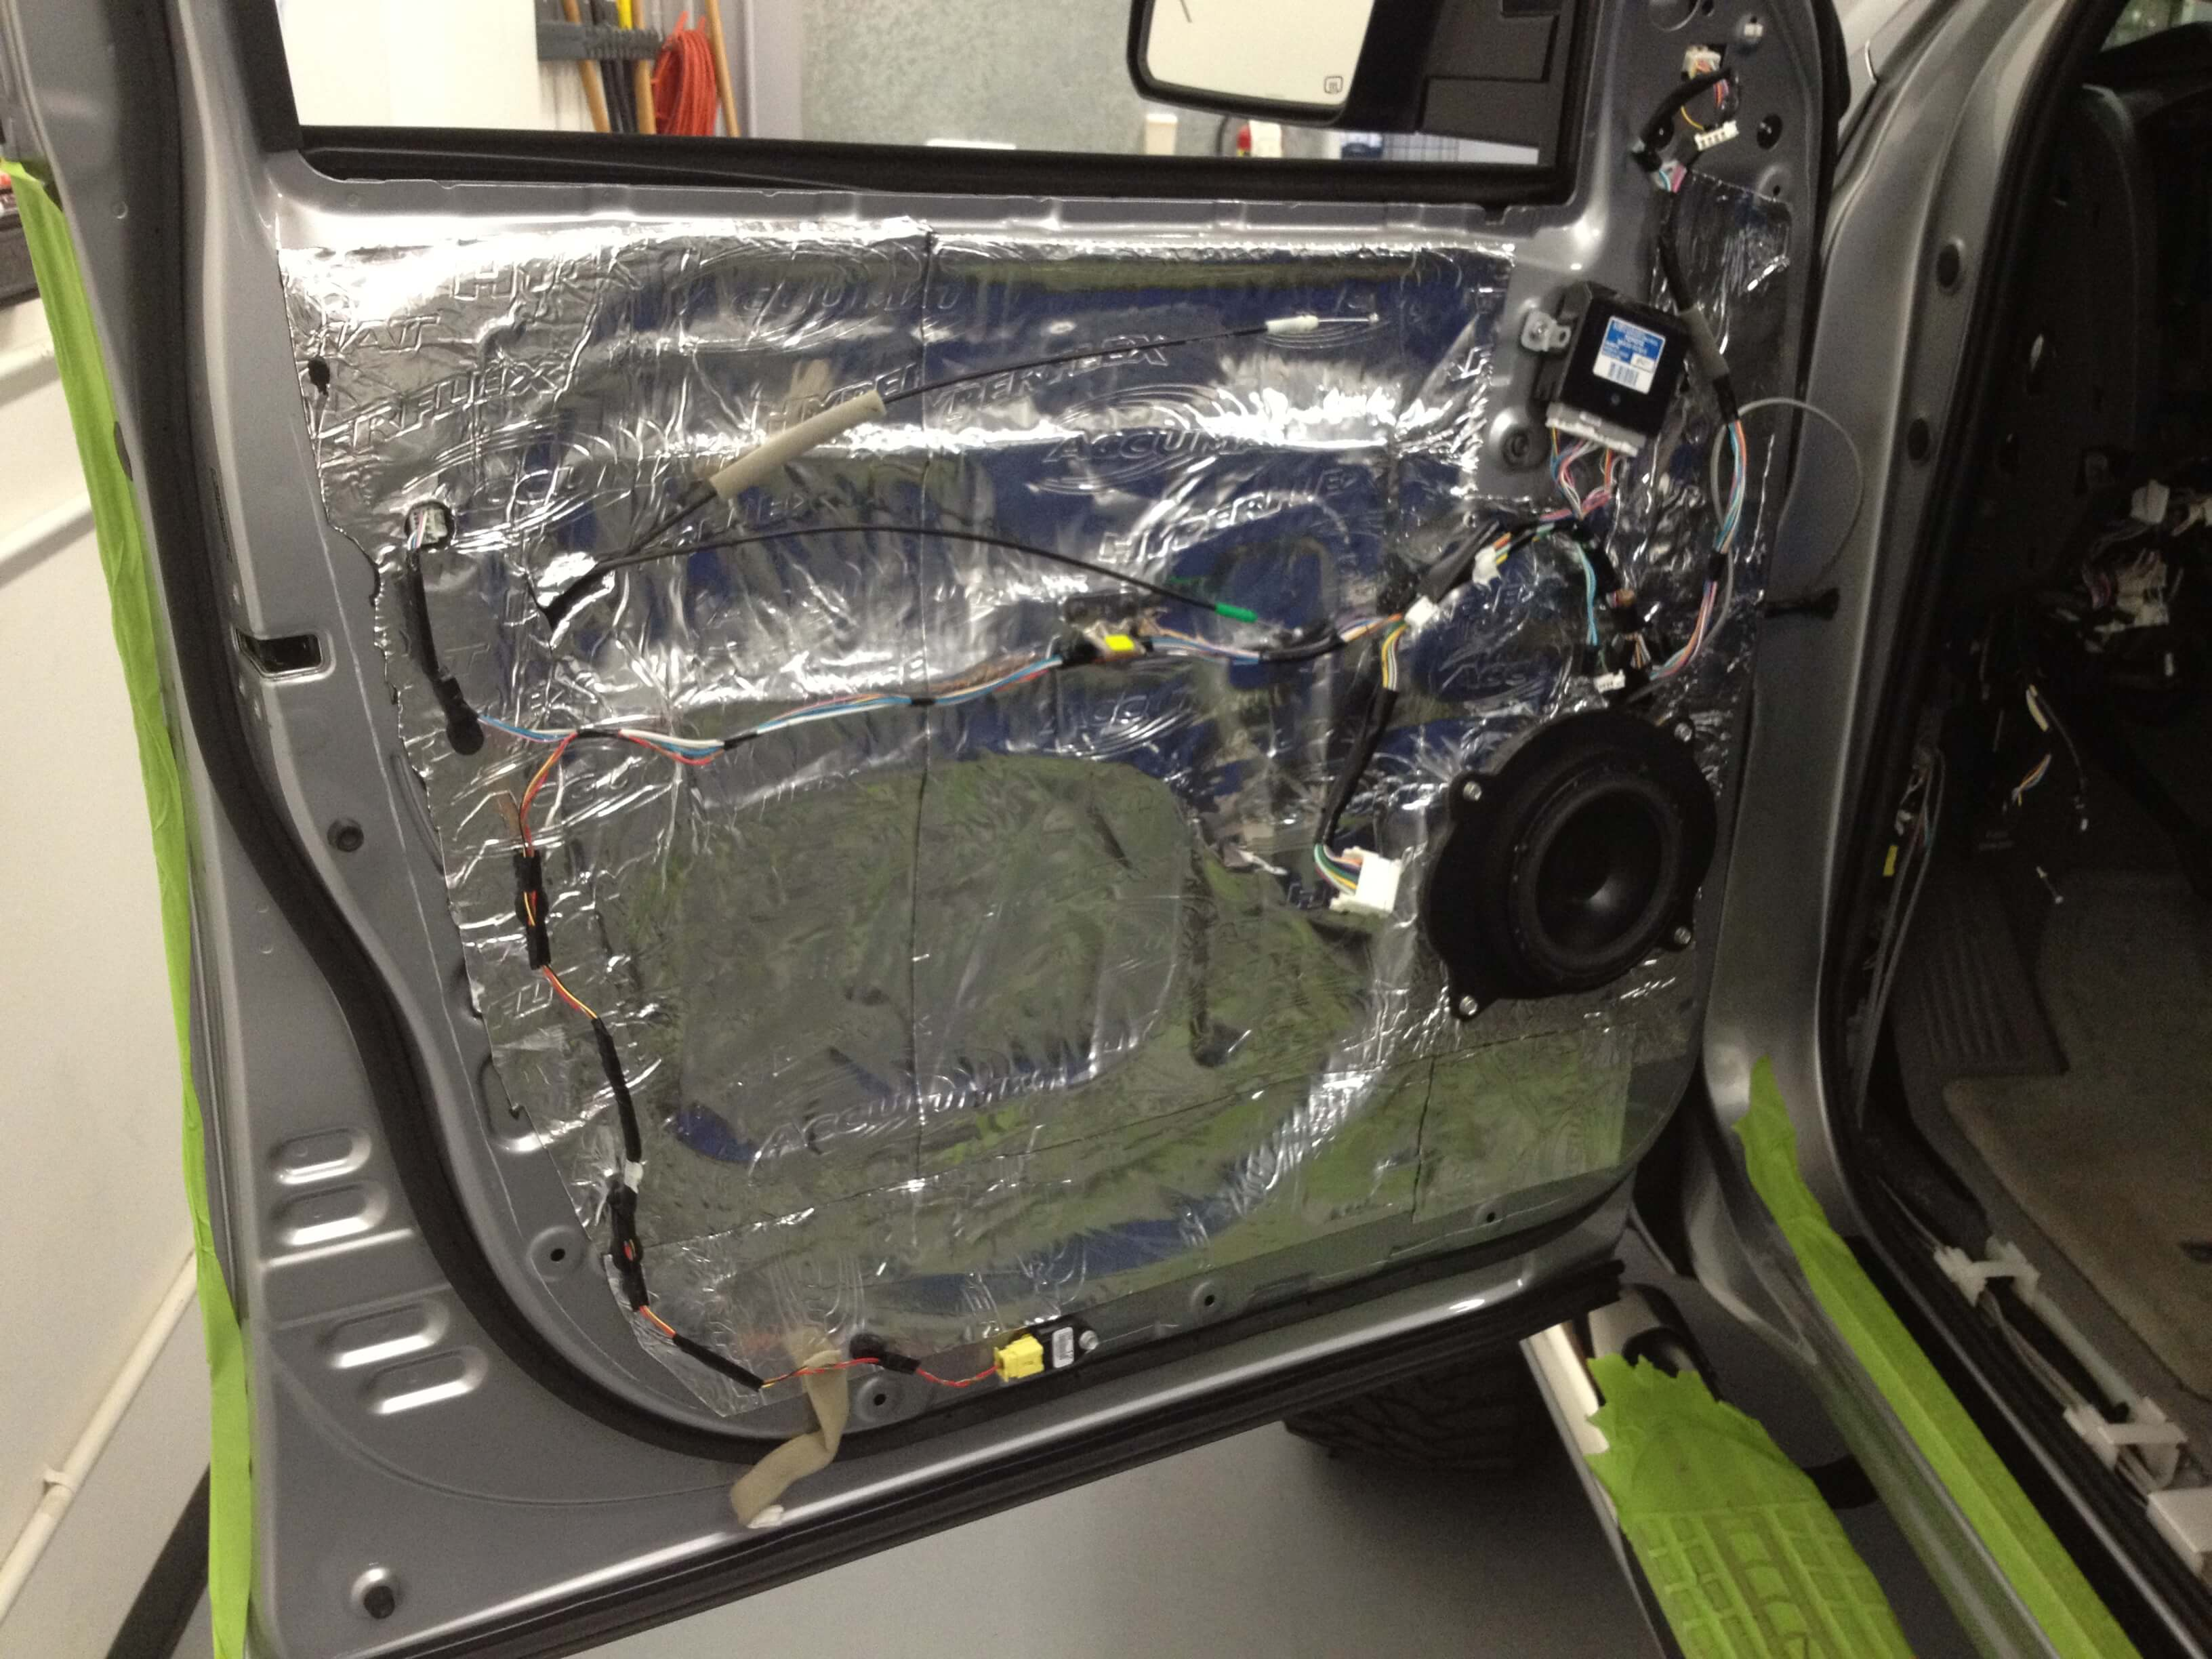 2008 Toyota Tundra Gets A Full System Plus Some Extra Goodies Silverado Rear View Mirror Wiring Diagram We Applied Sound Deadener Material To The Doors Floors Roof And Back Wall